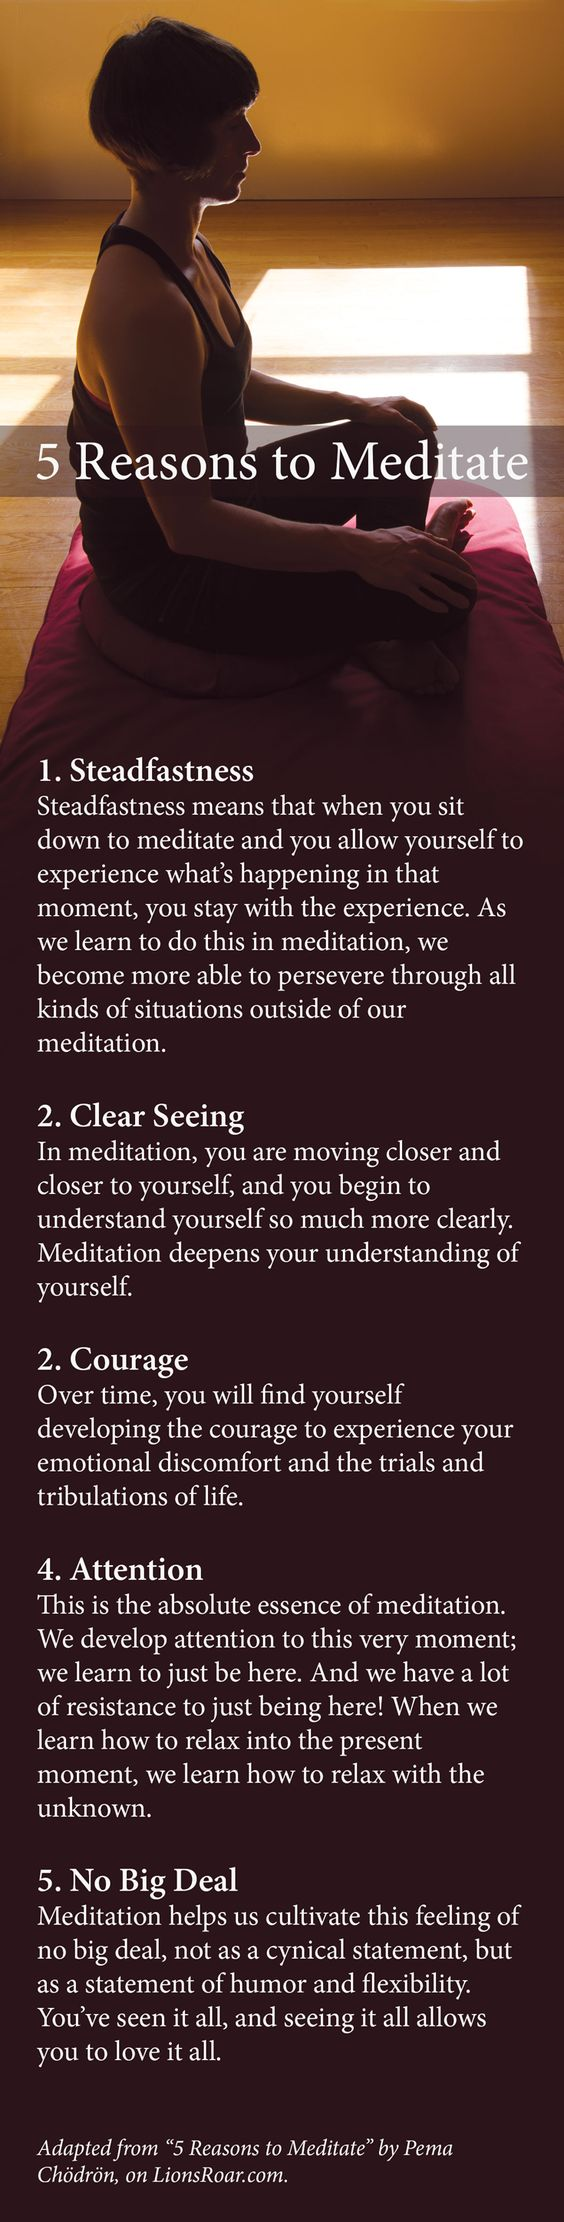 5 reasons to meditate